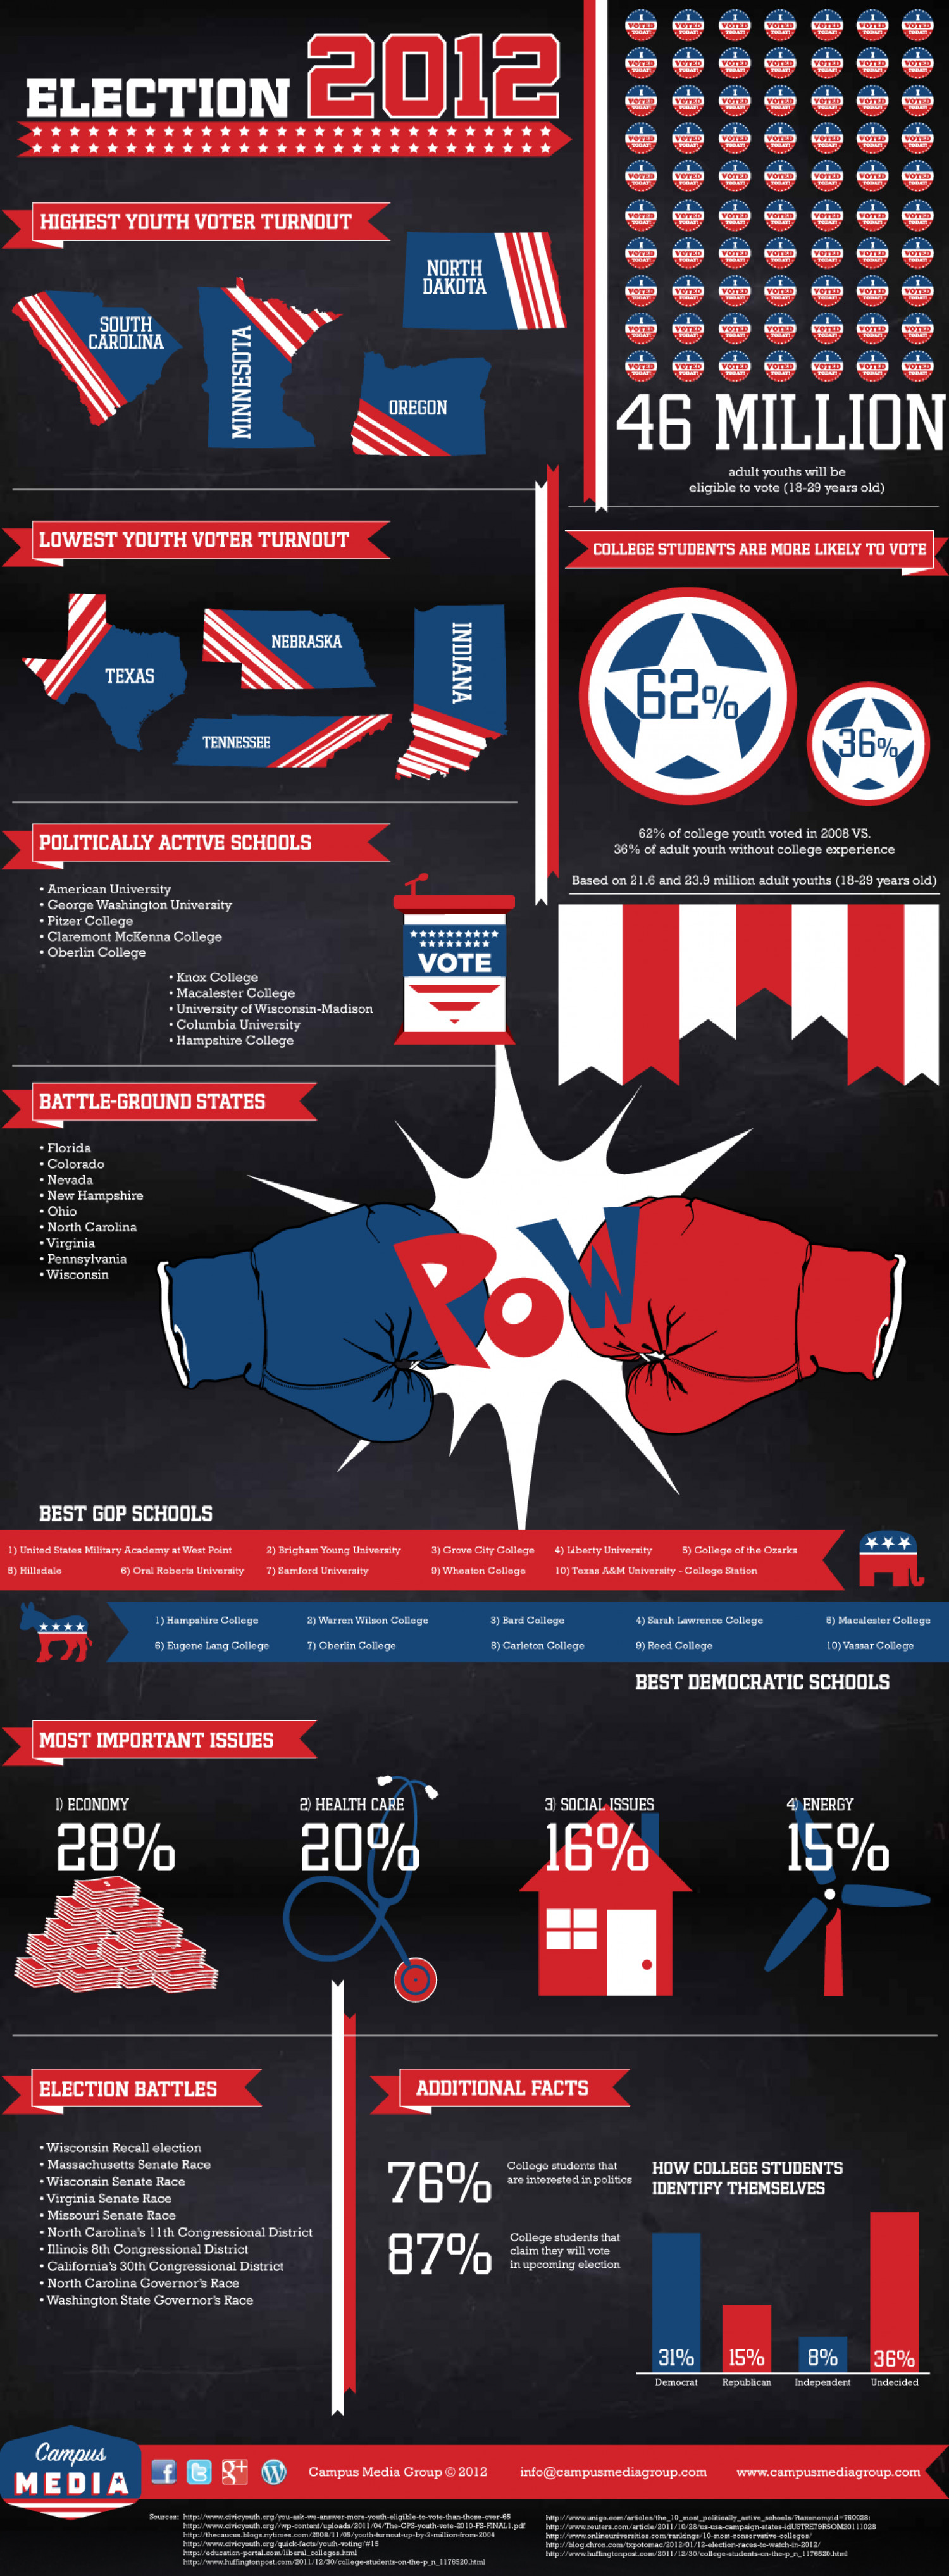 College Students and the 2012 Election Infographic